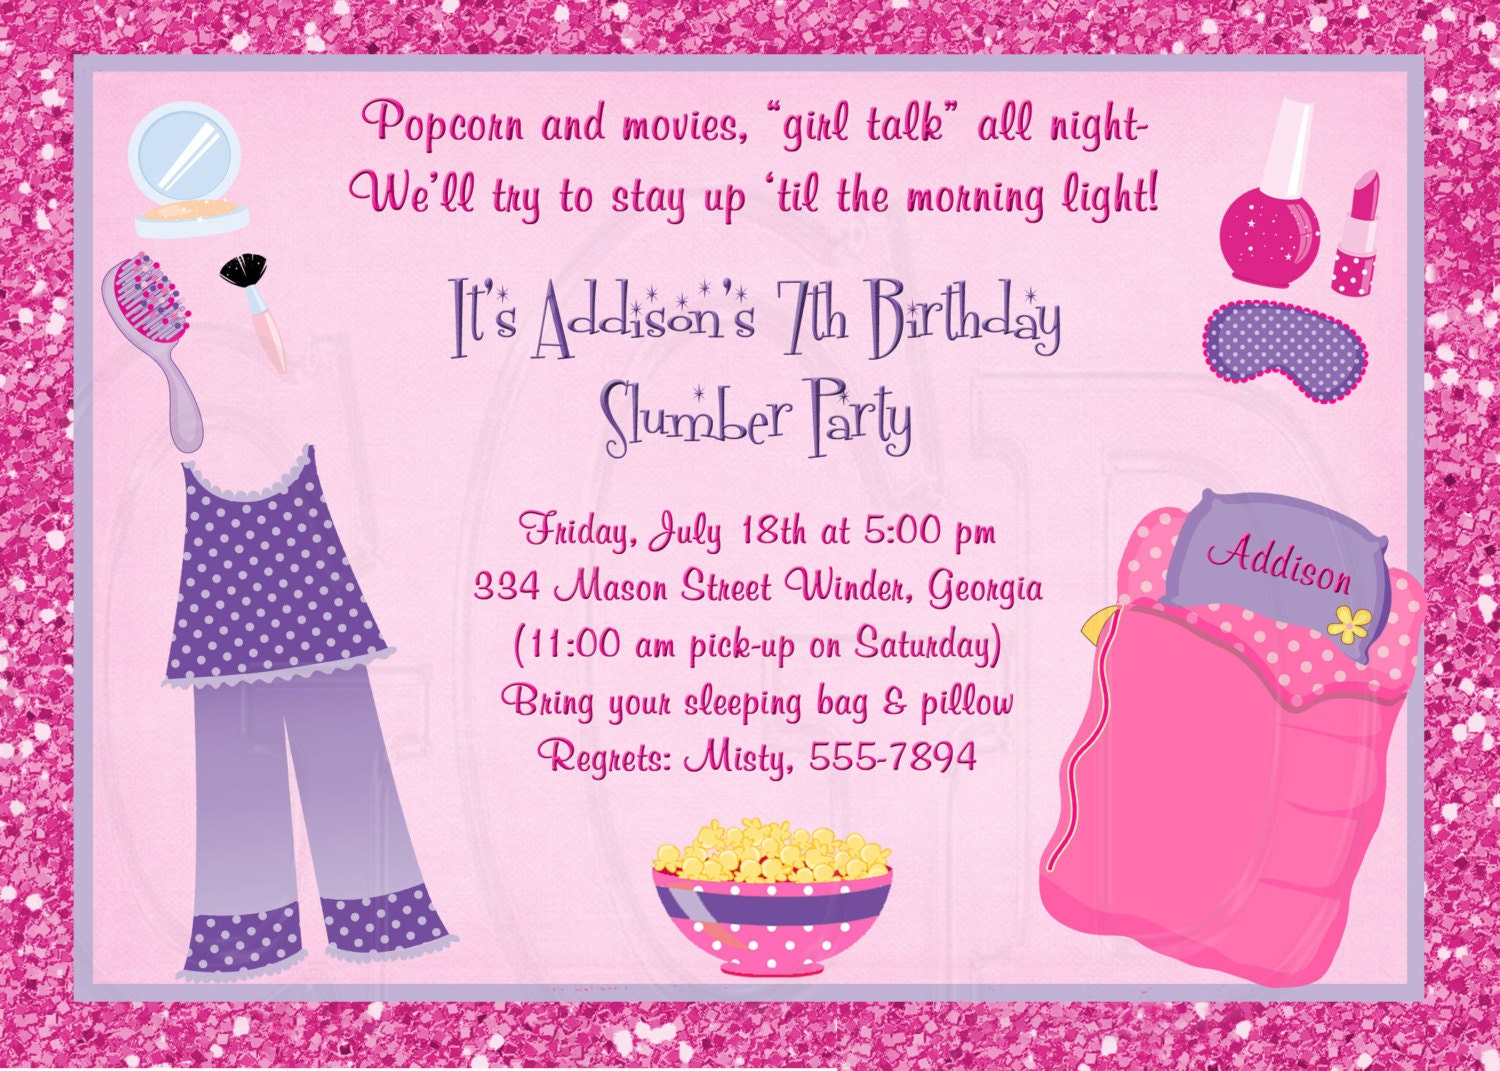 Slumber Party Invitation Pajama Party sleepover invite pj